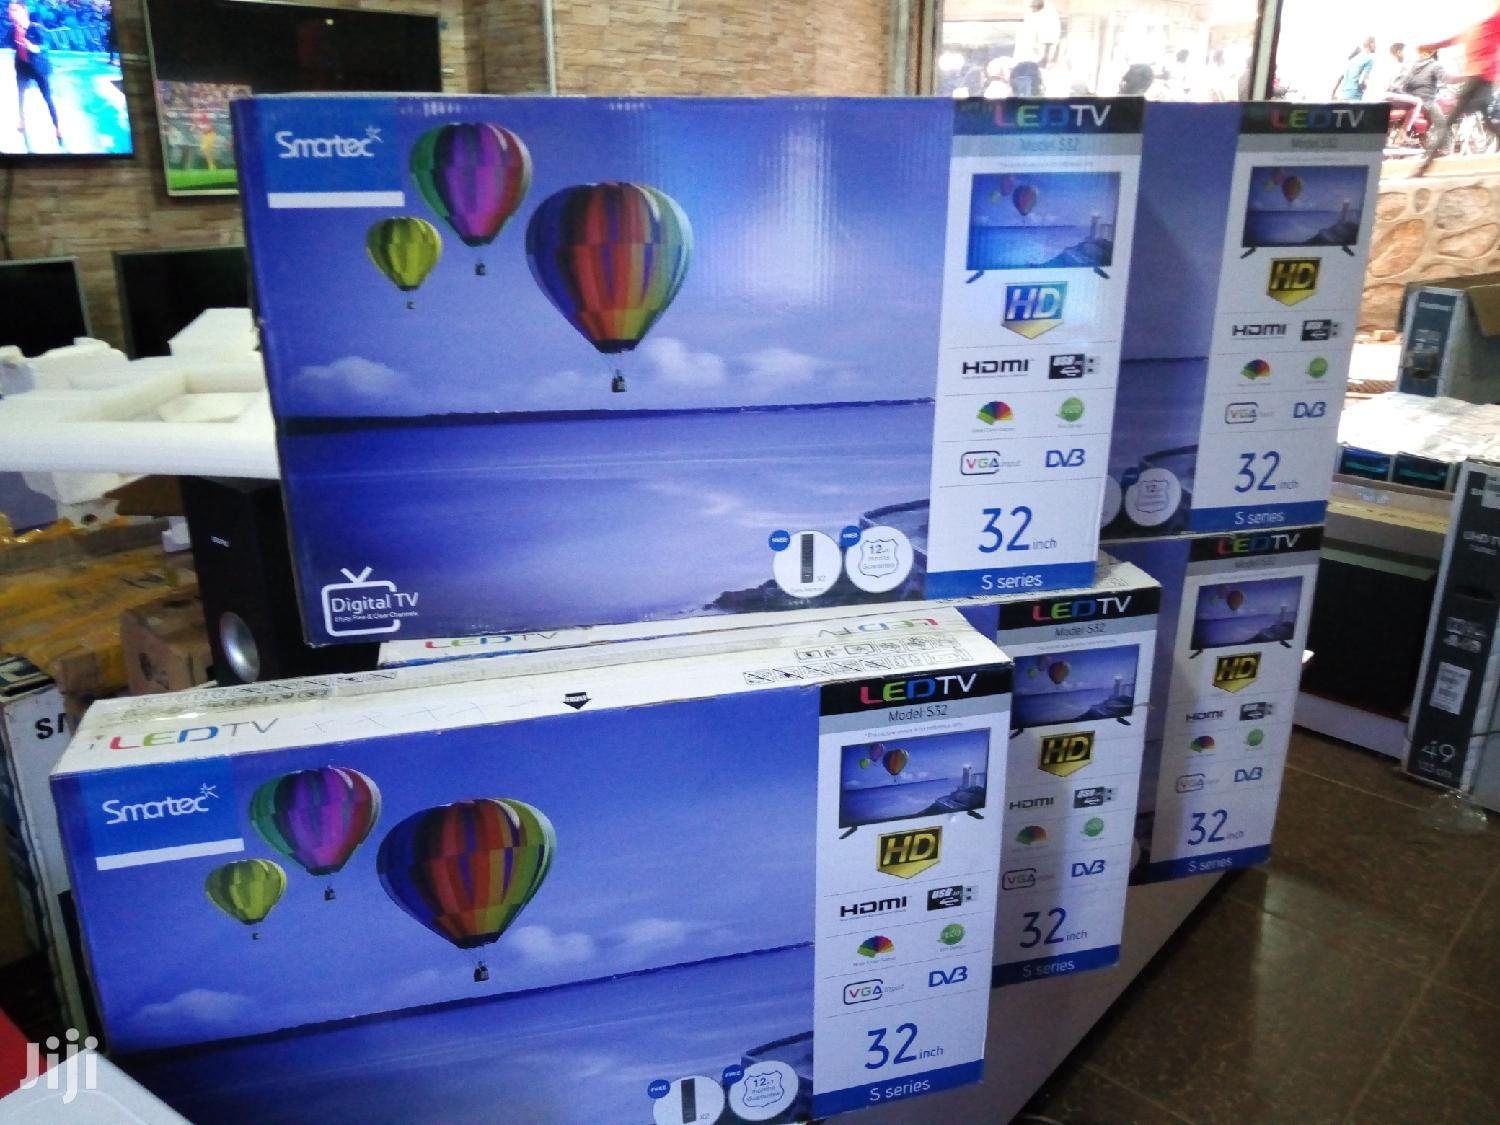 Smartec LED Digital Flat Screen Tv 32 Inches | TV & DVD Equipment for sale in Kampala, Central Region, Uganda